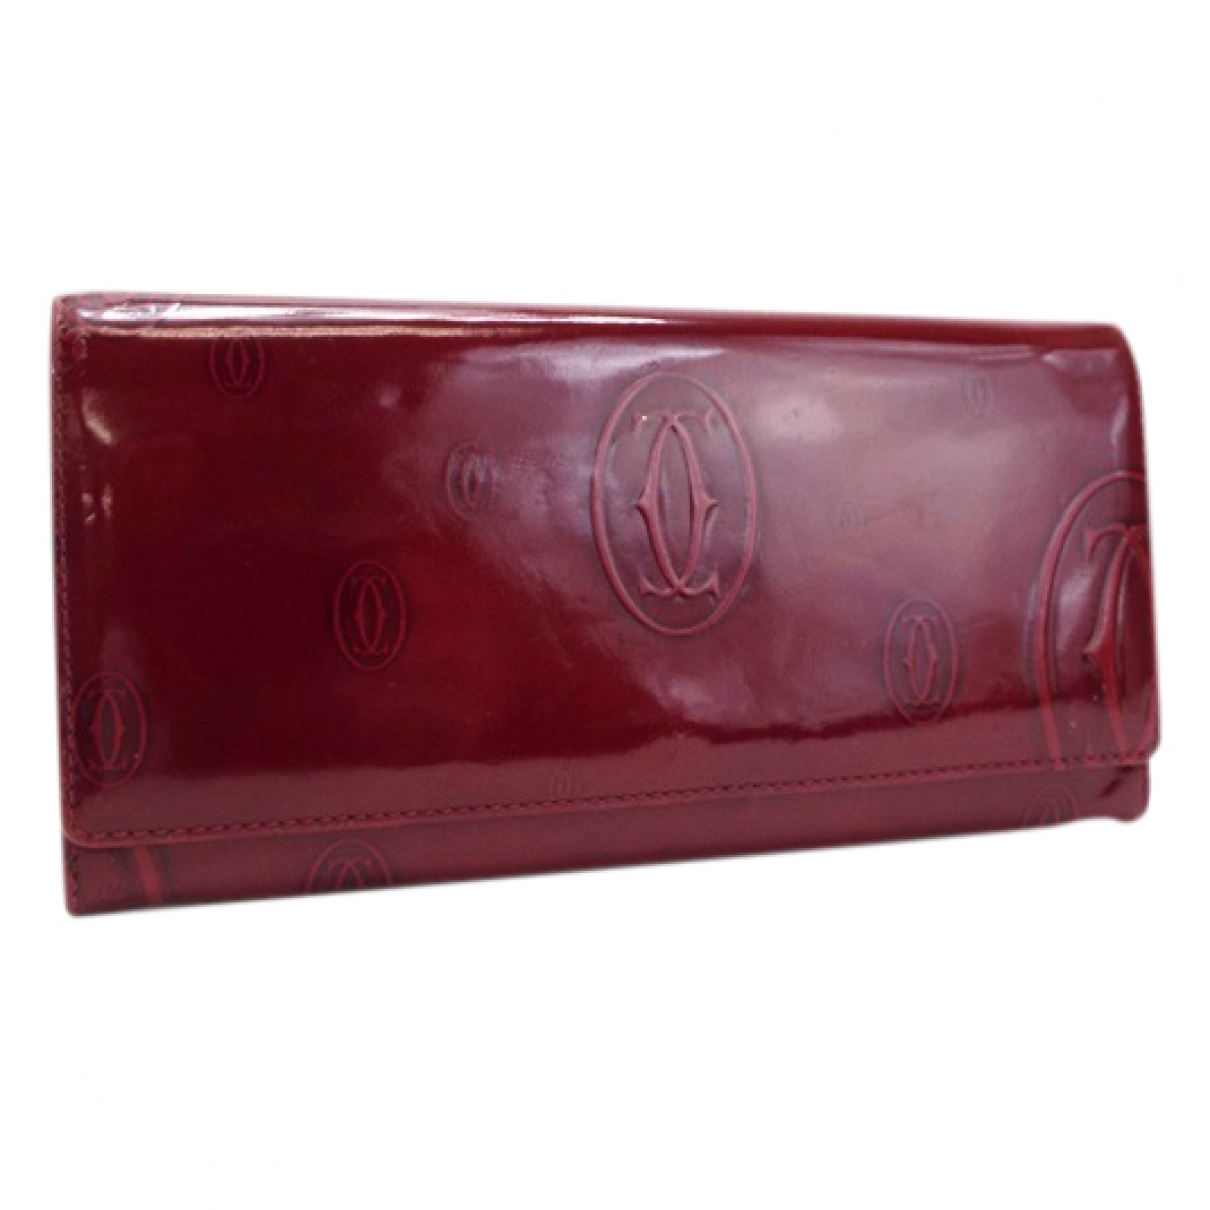 Cartier \N Burgundy Patent leather wallet for Women \N